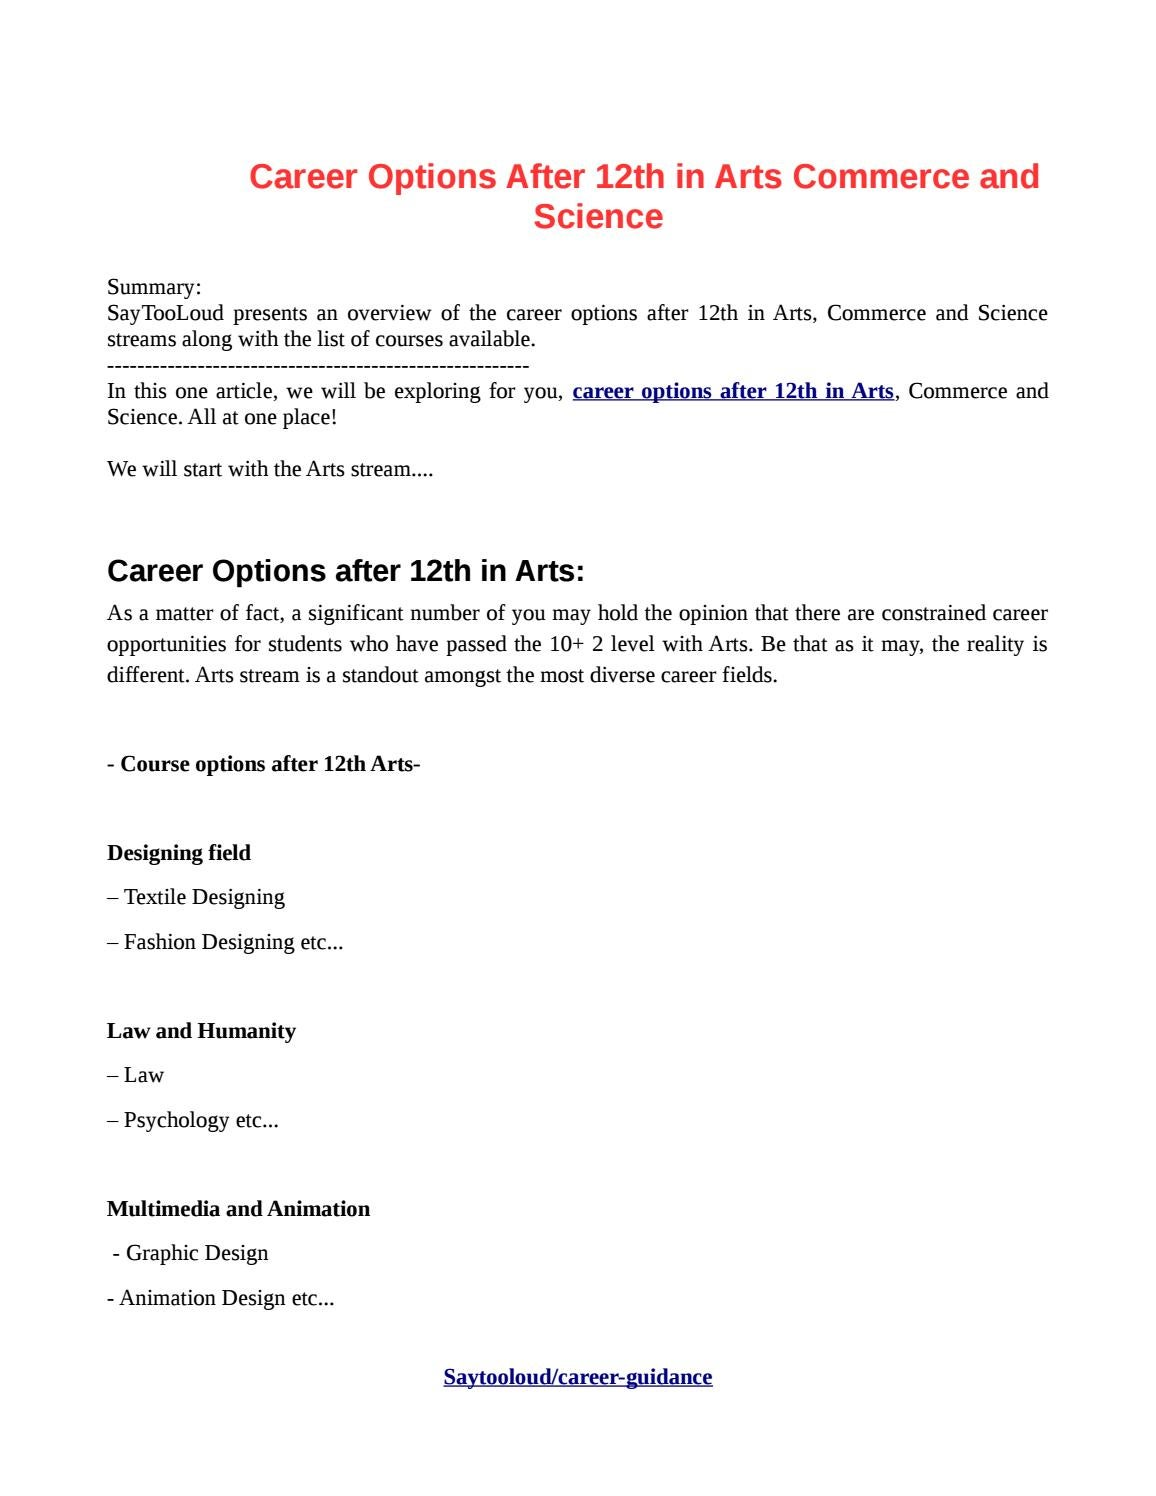 Career Options After 12th In Arts Commerce And Science By Ashwini Sharma Issuu